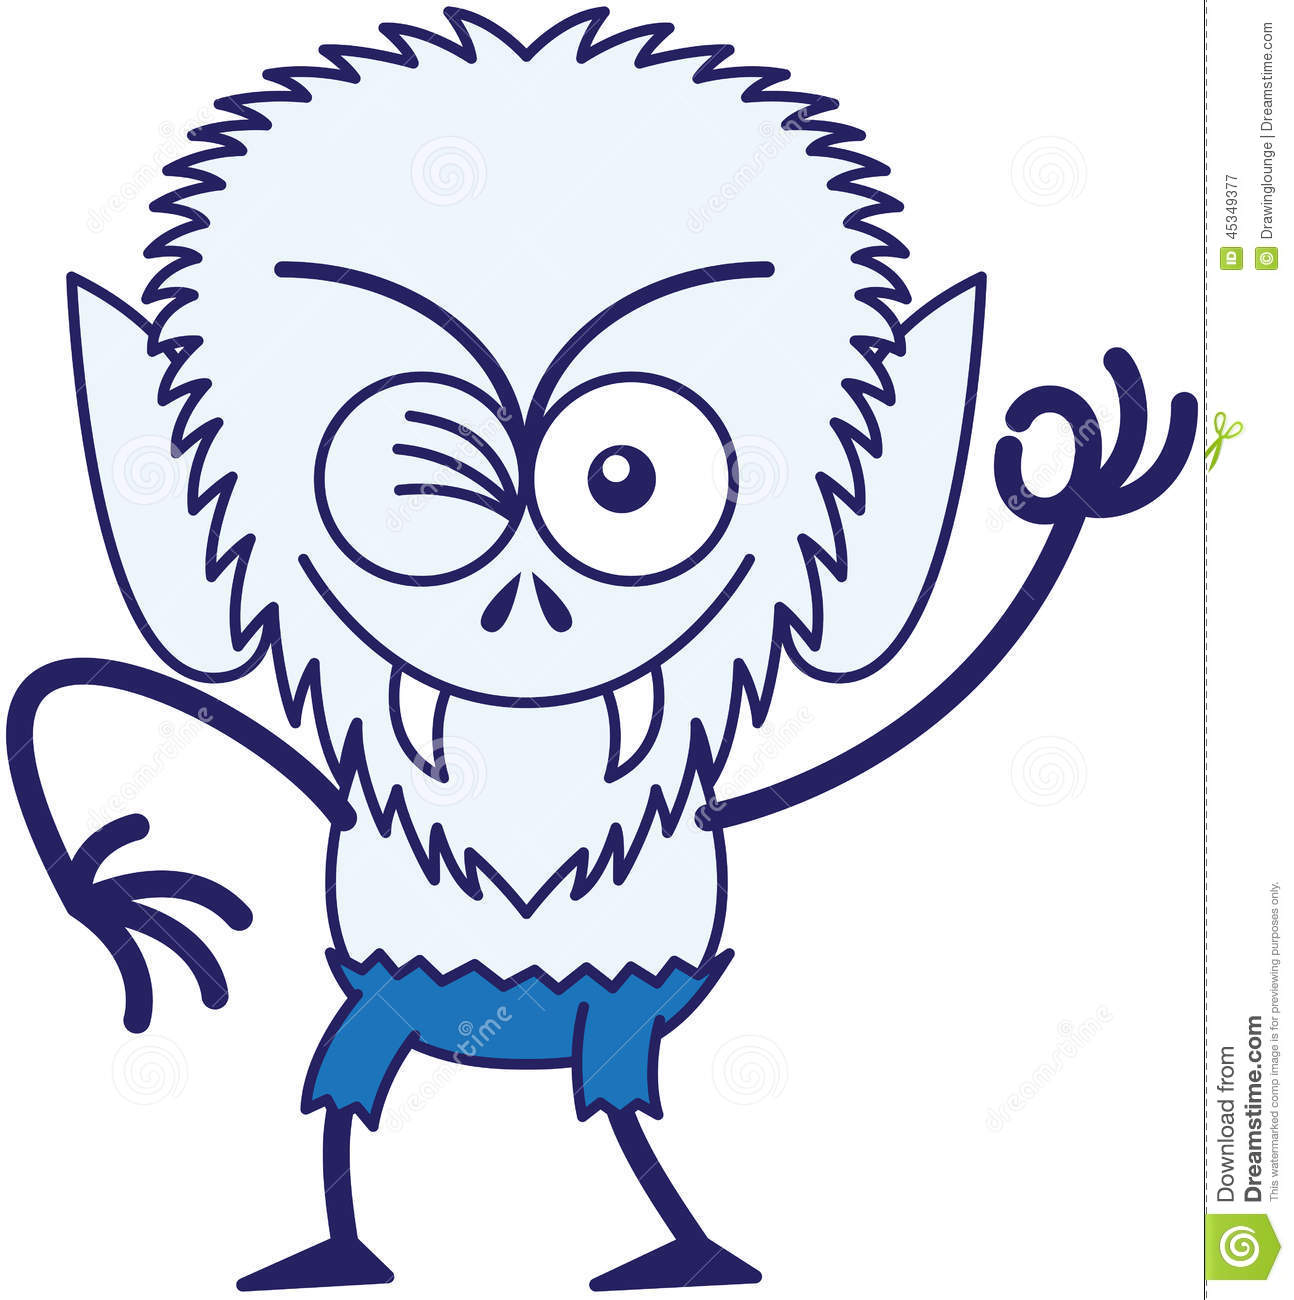 Cool Halloween Werewolf Winking And Making An OK Sign Stock Vector.